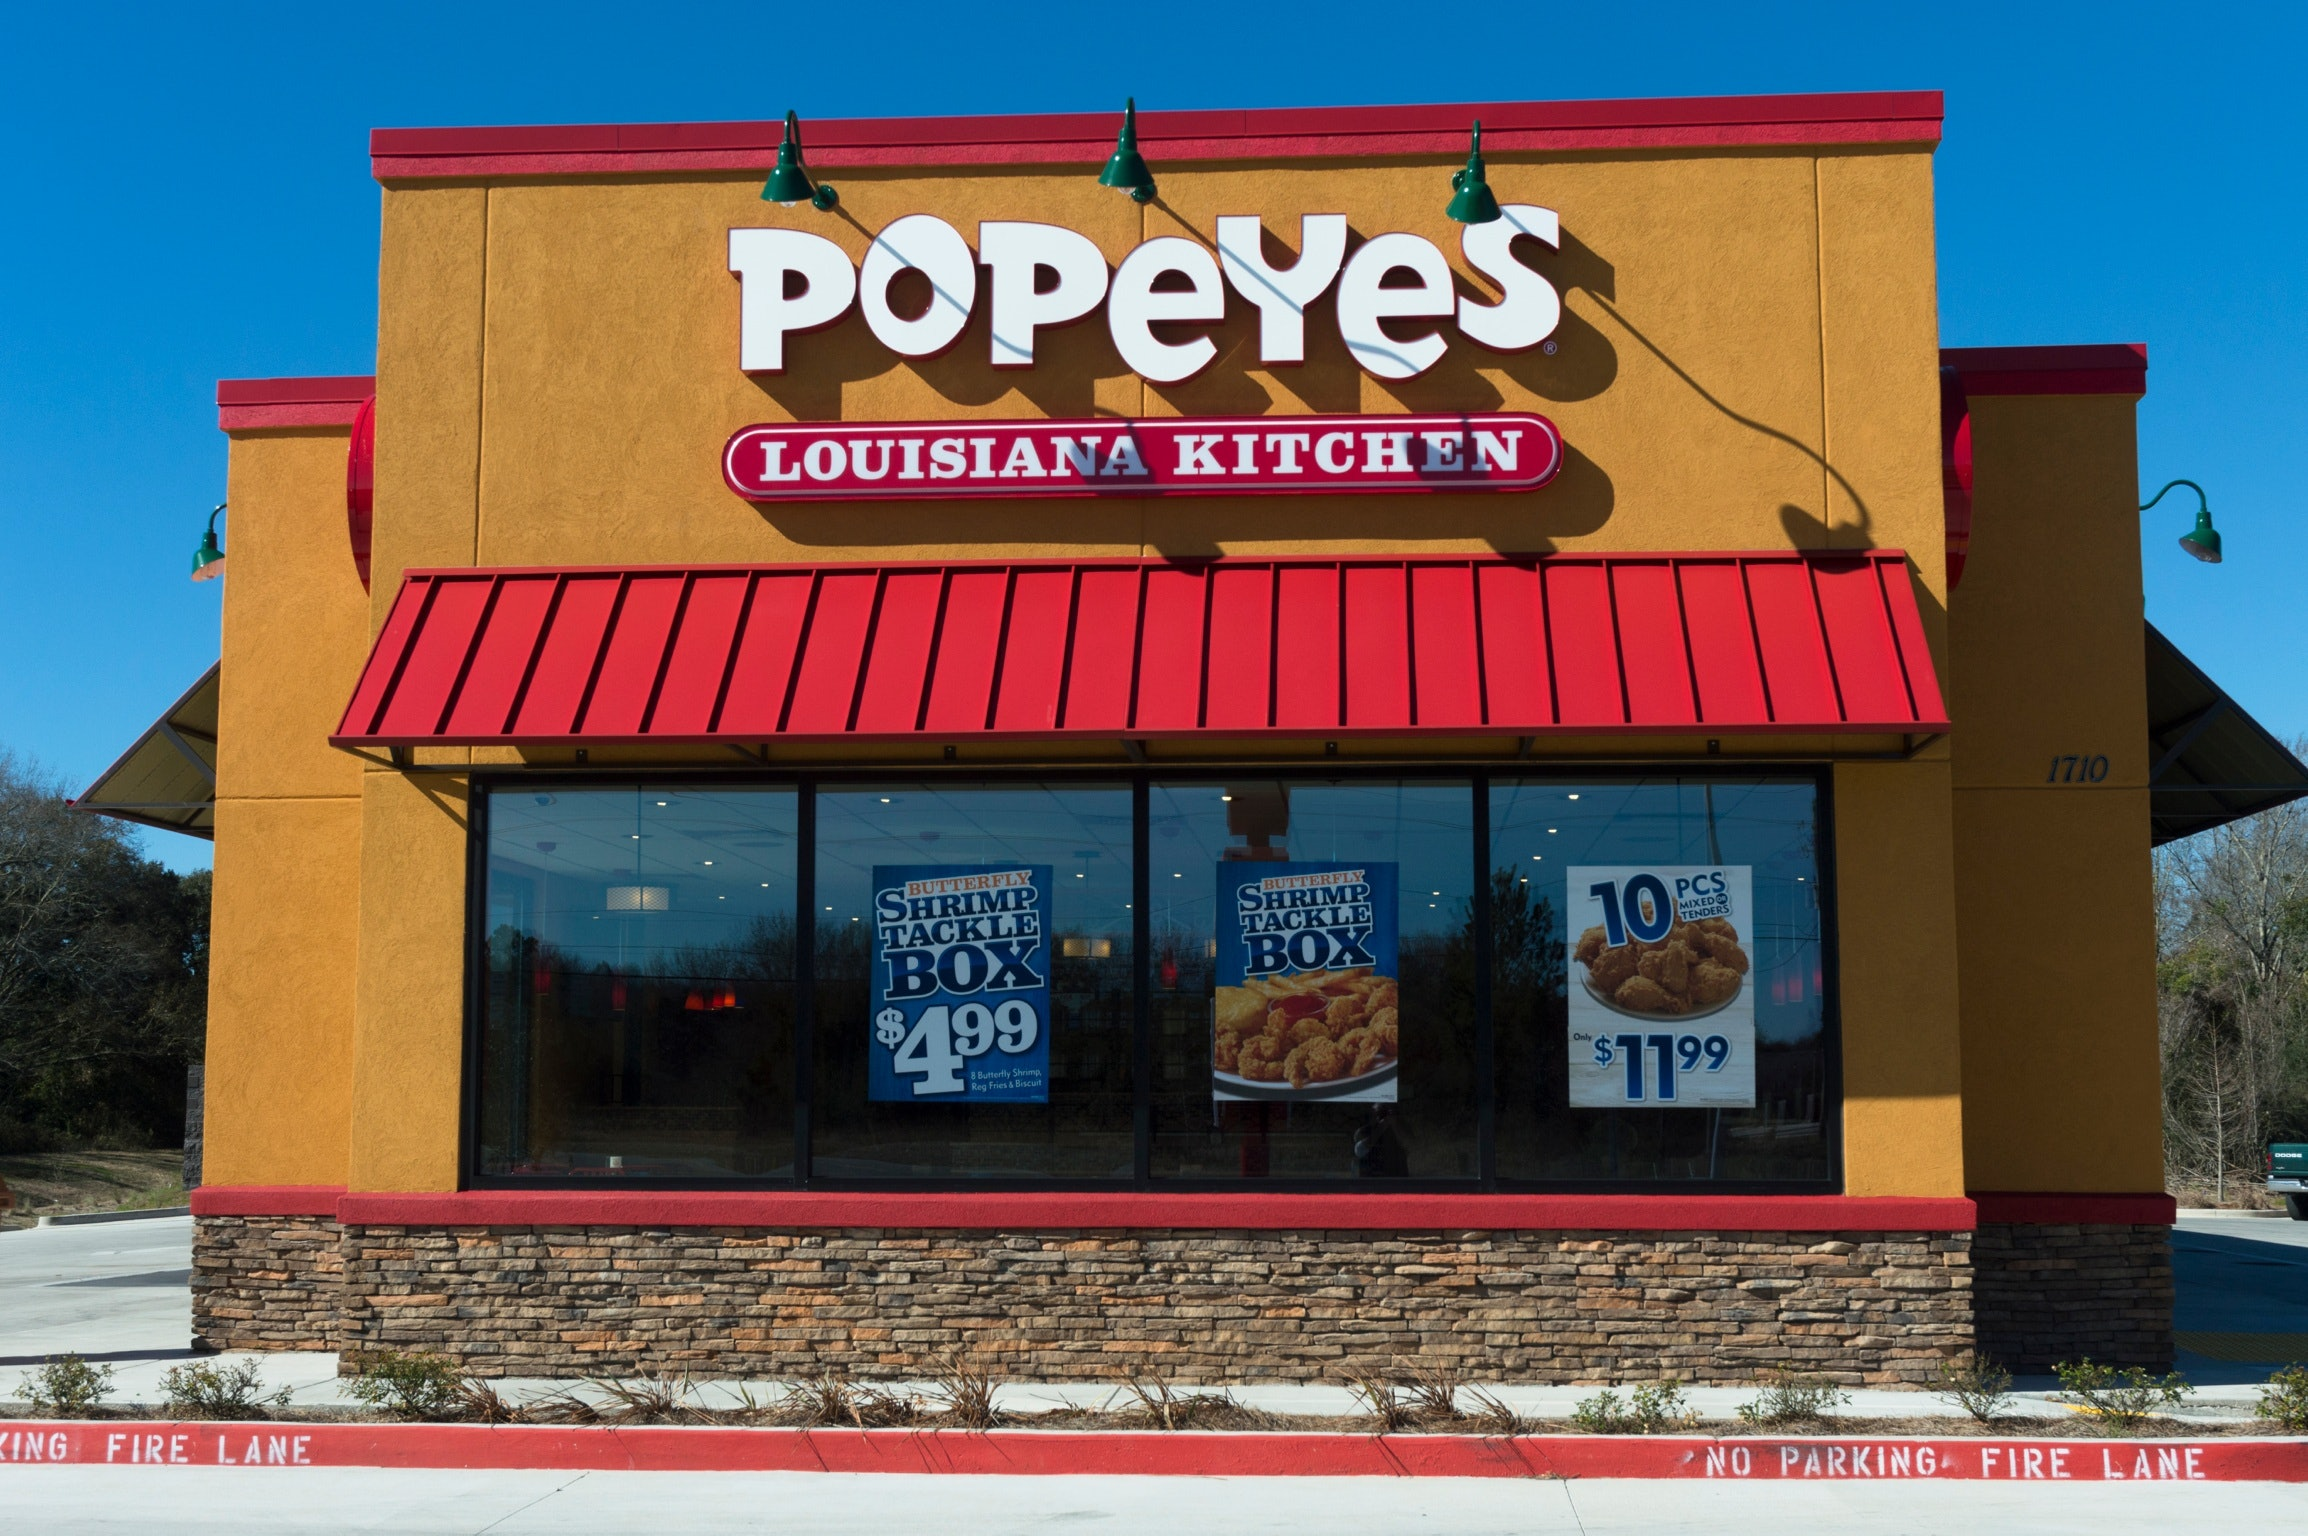 Popeyes daily deals 3 99 - sweep over